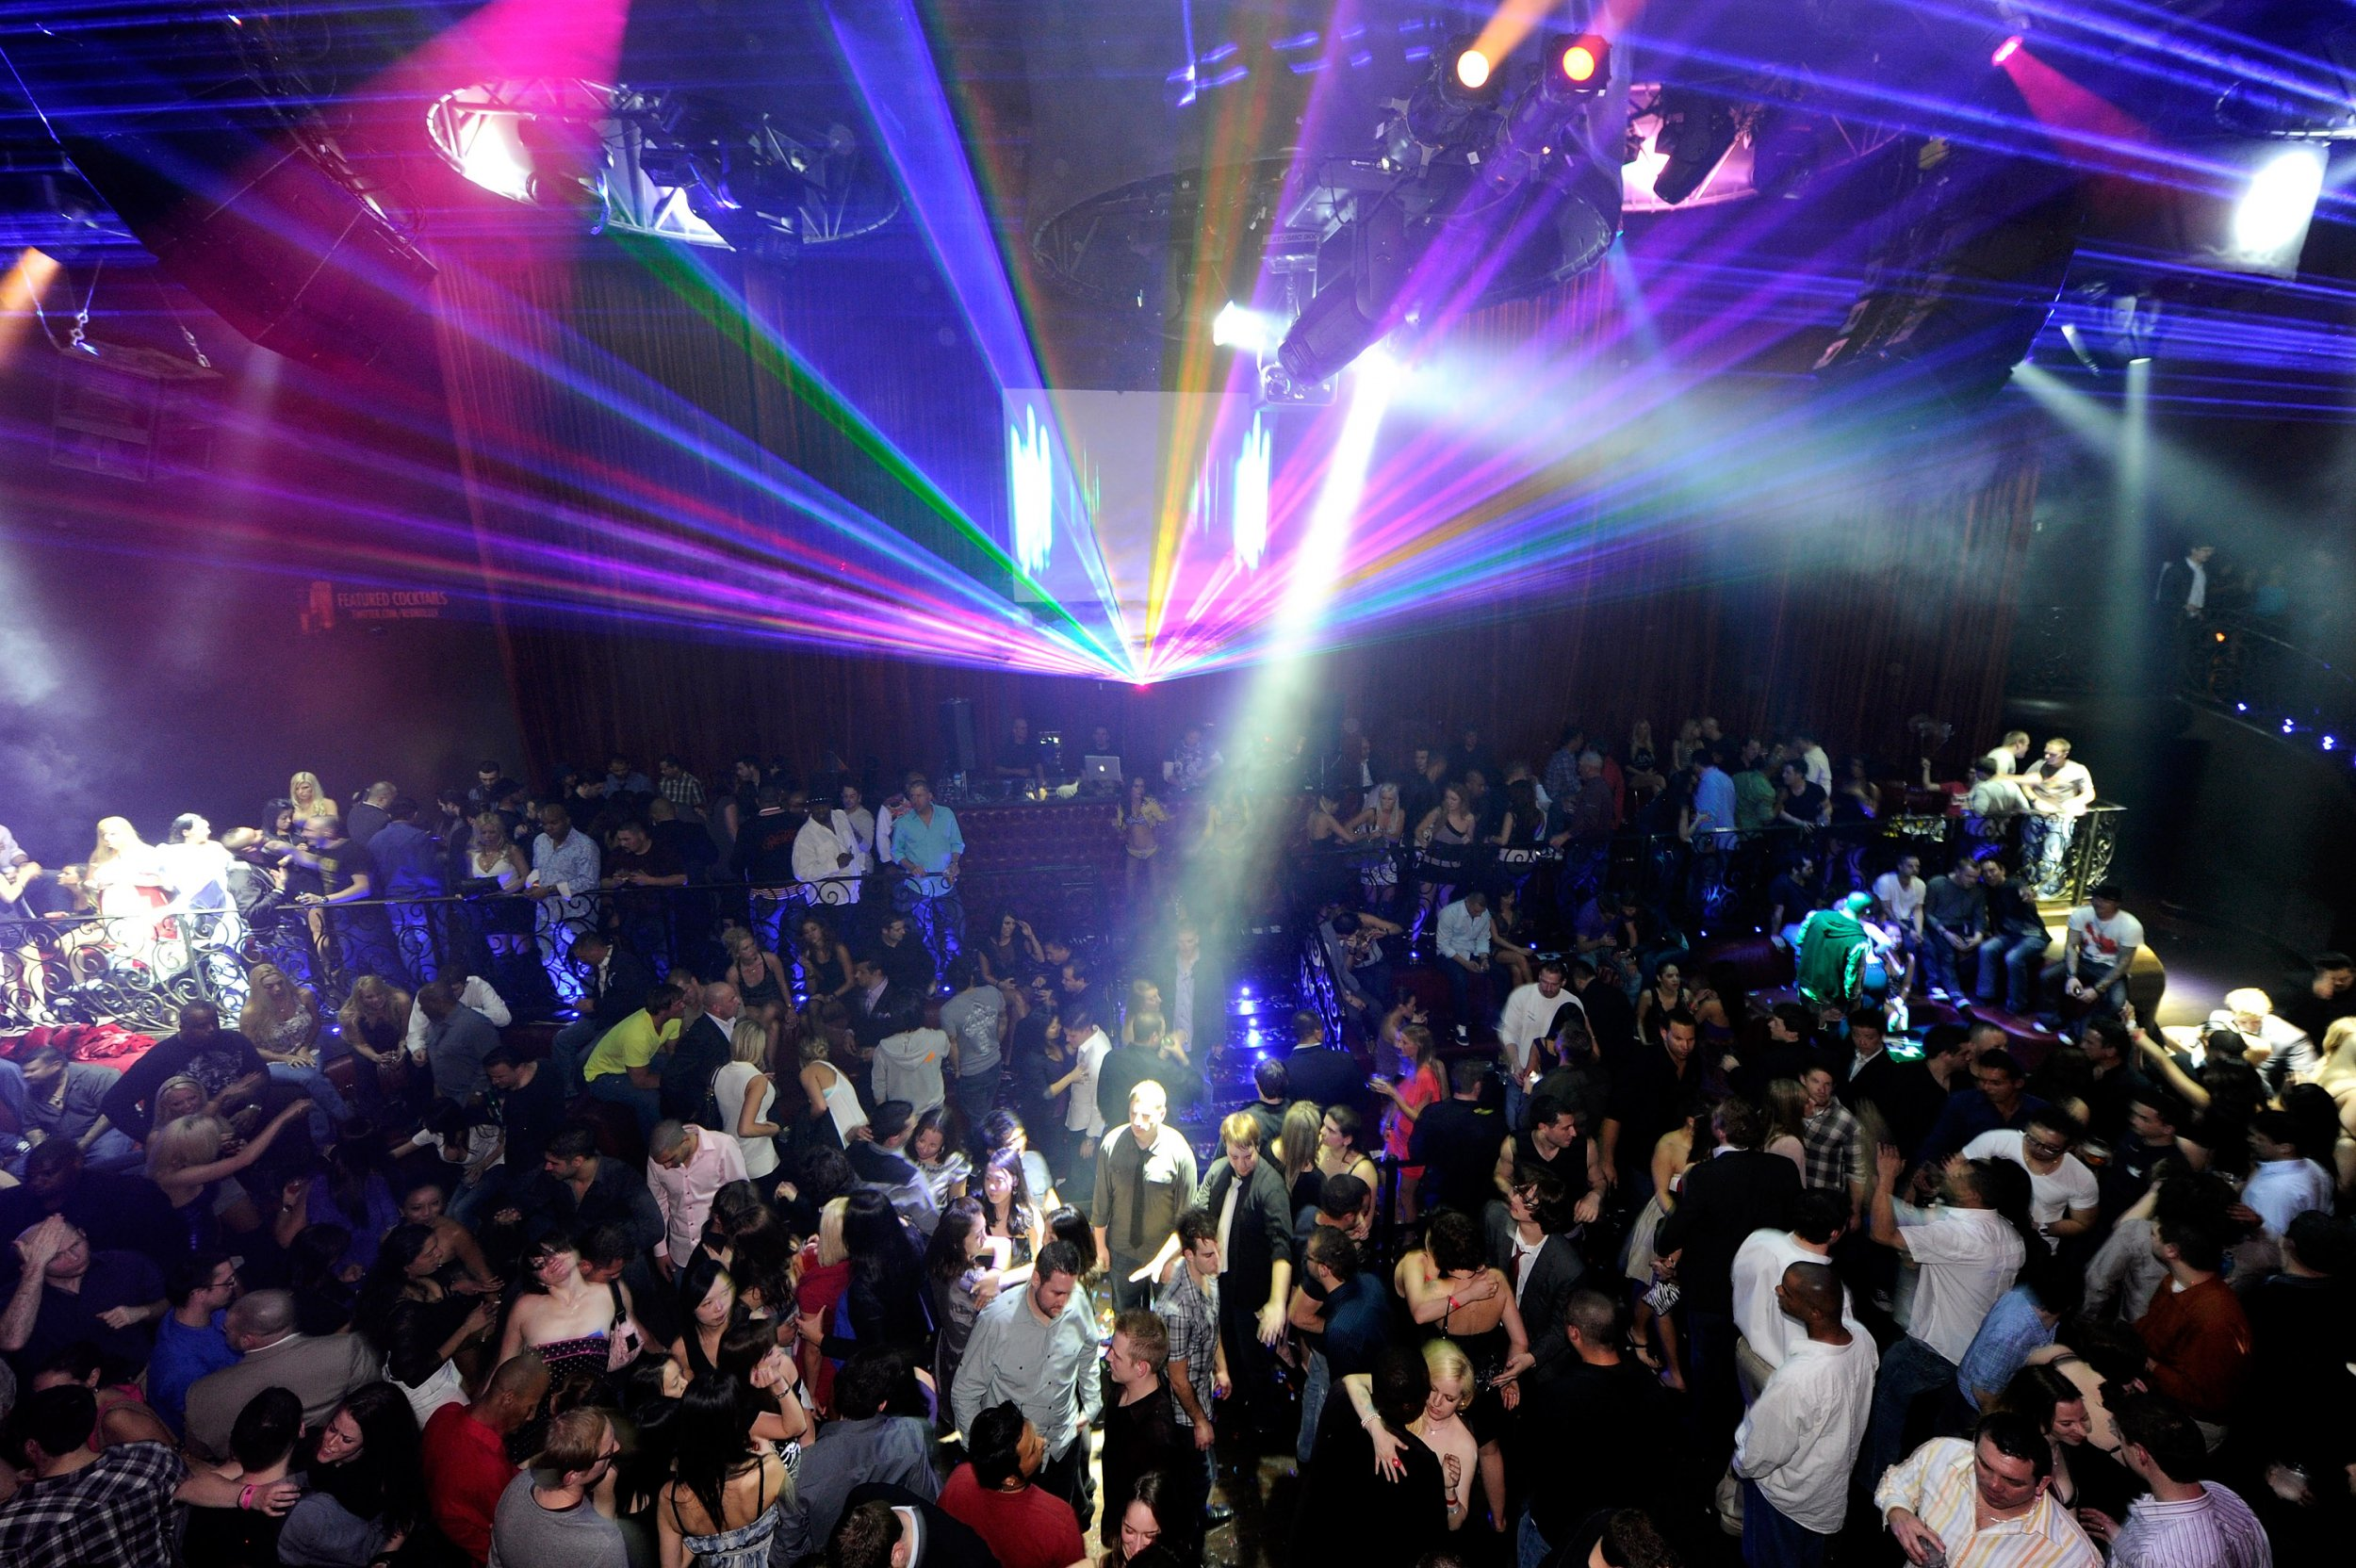 London's Fabric Nightclub Closed Permanently After License ...